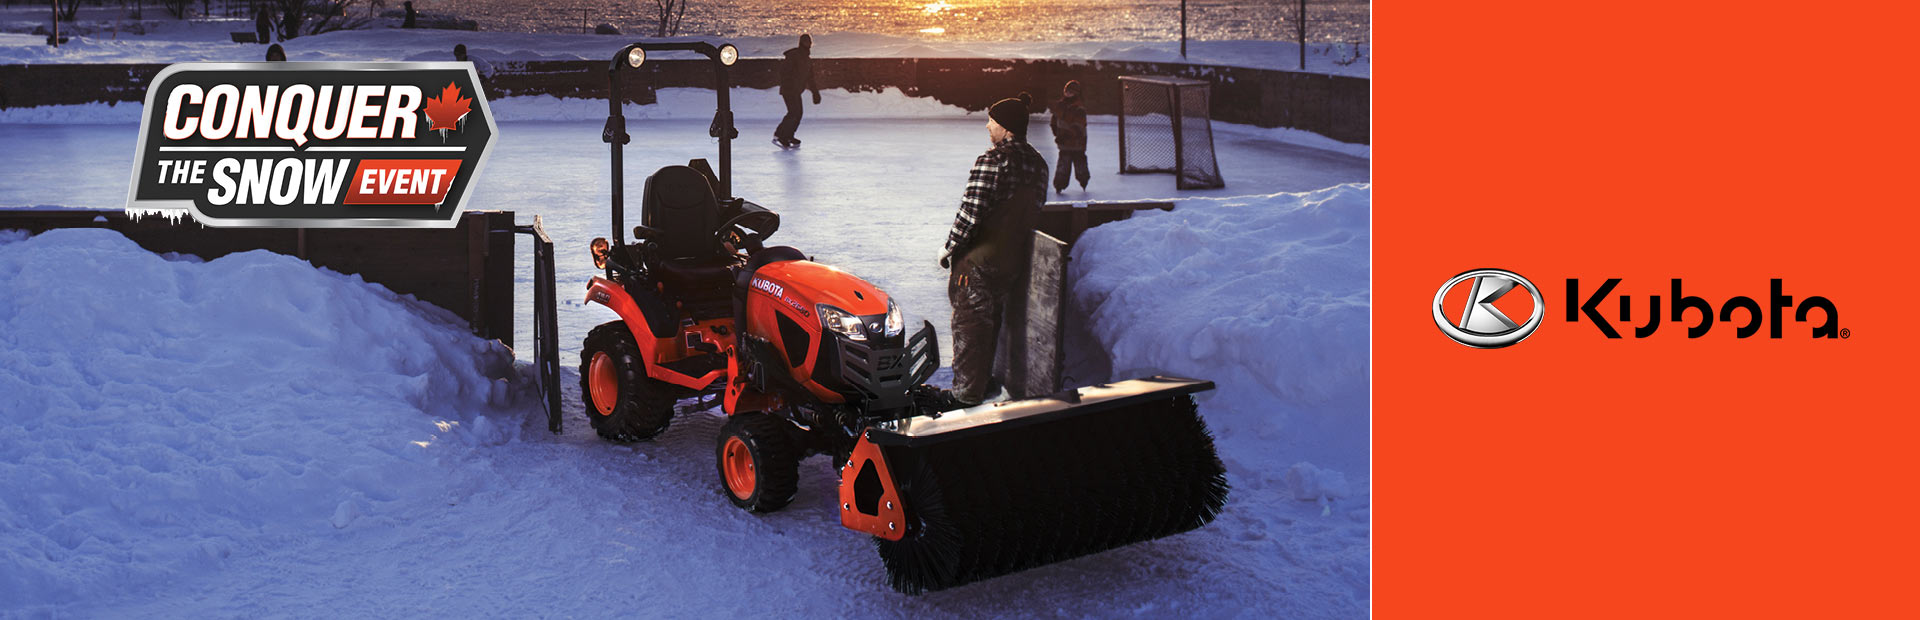 Kubota: Conquer the Snow Event